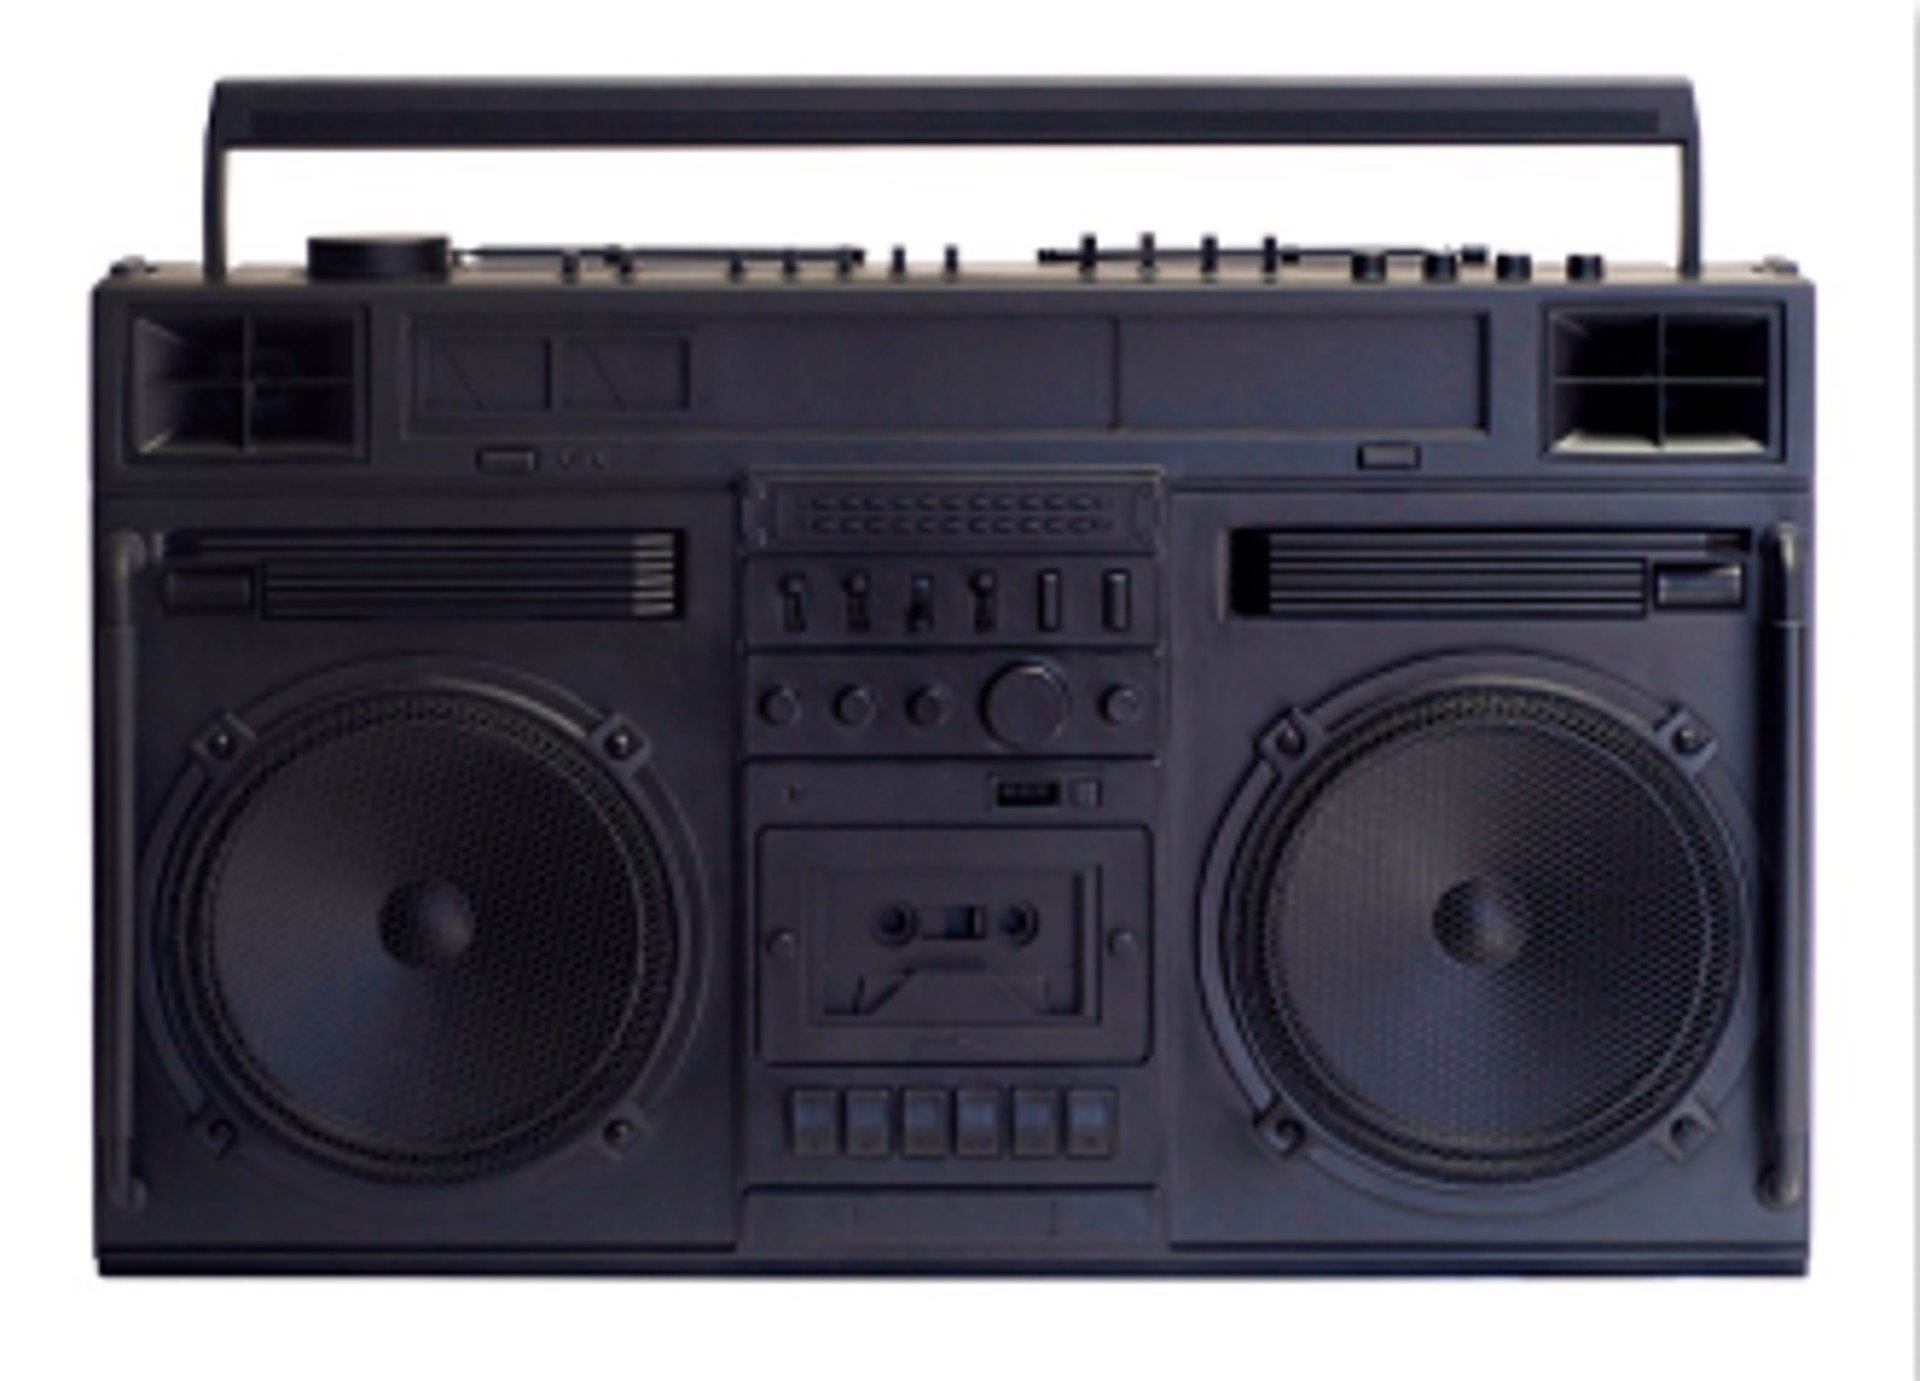 Boombox Sculpture series Size D, Black by Lyle Owerko